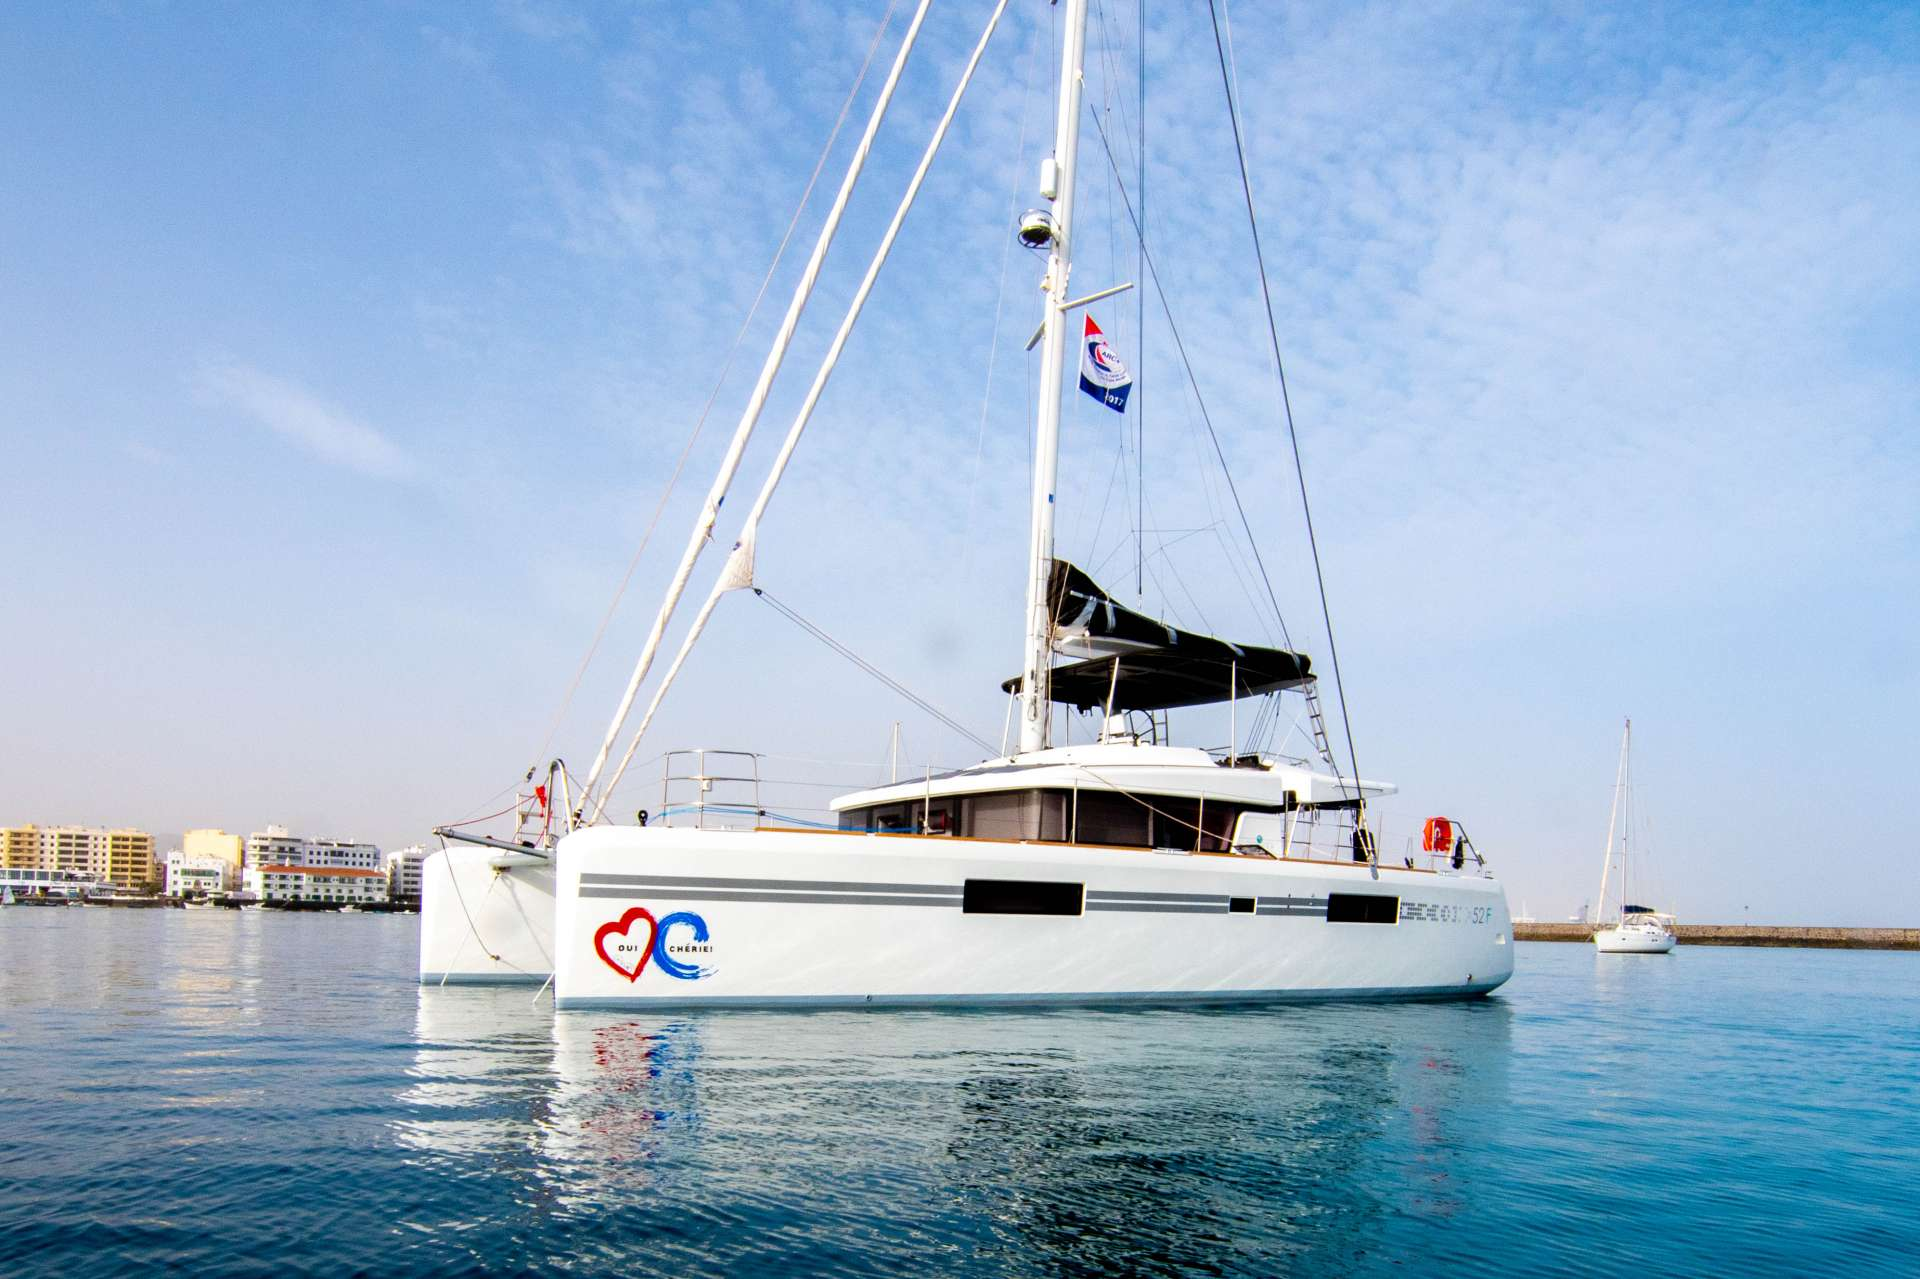 """When asked the question, """"Did you select the best yacht in the Caribbean? The answer can only be Oui Cherie""""."""